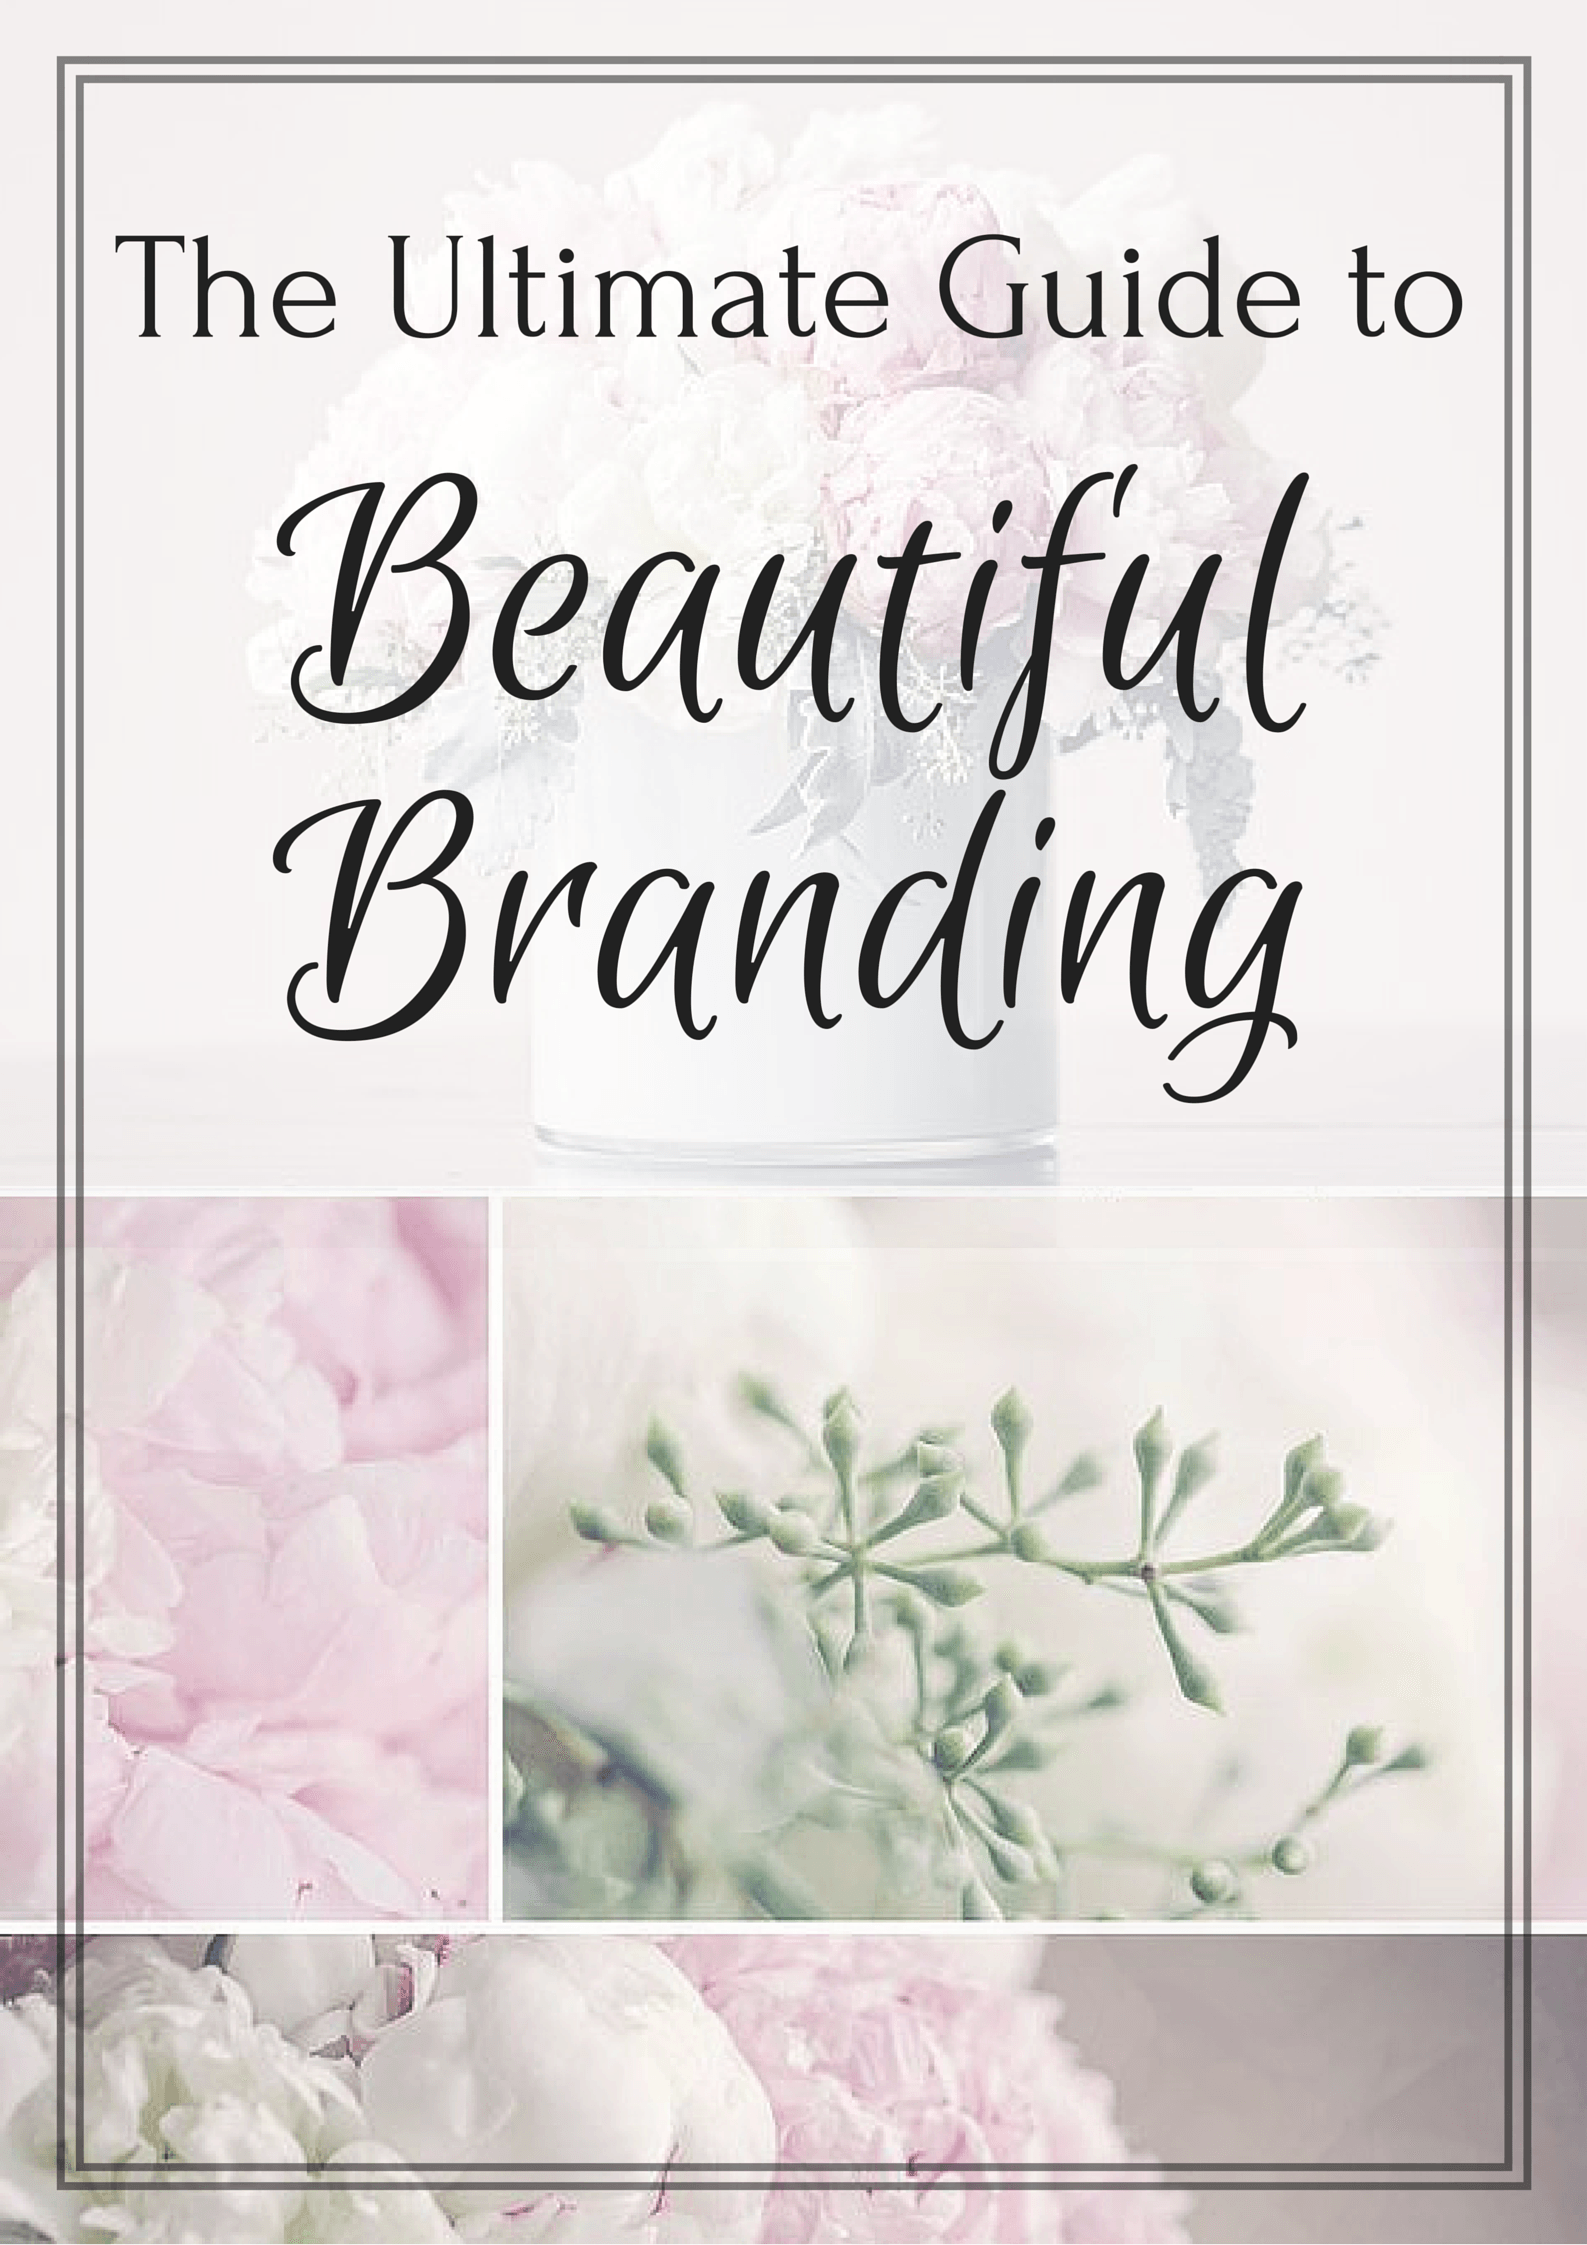 The Ultimate Guide to Beautiful Branding by Gillian Perkins